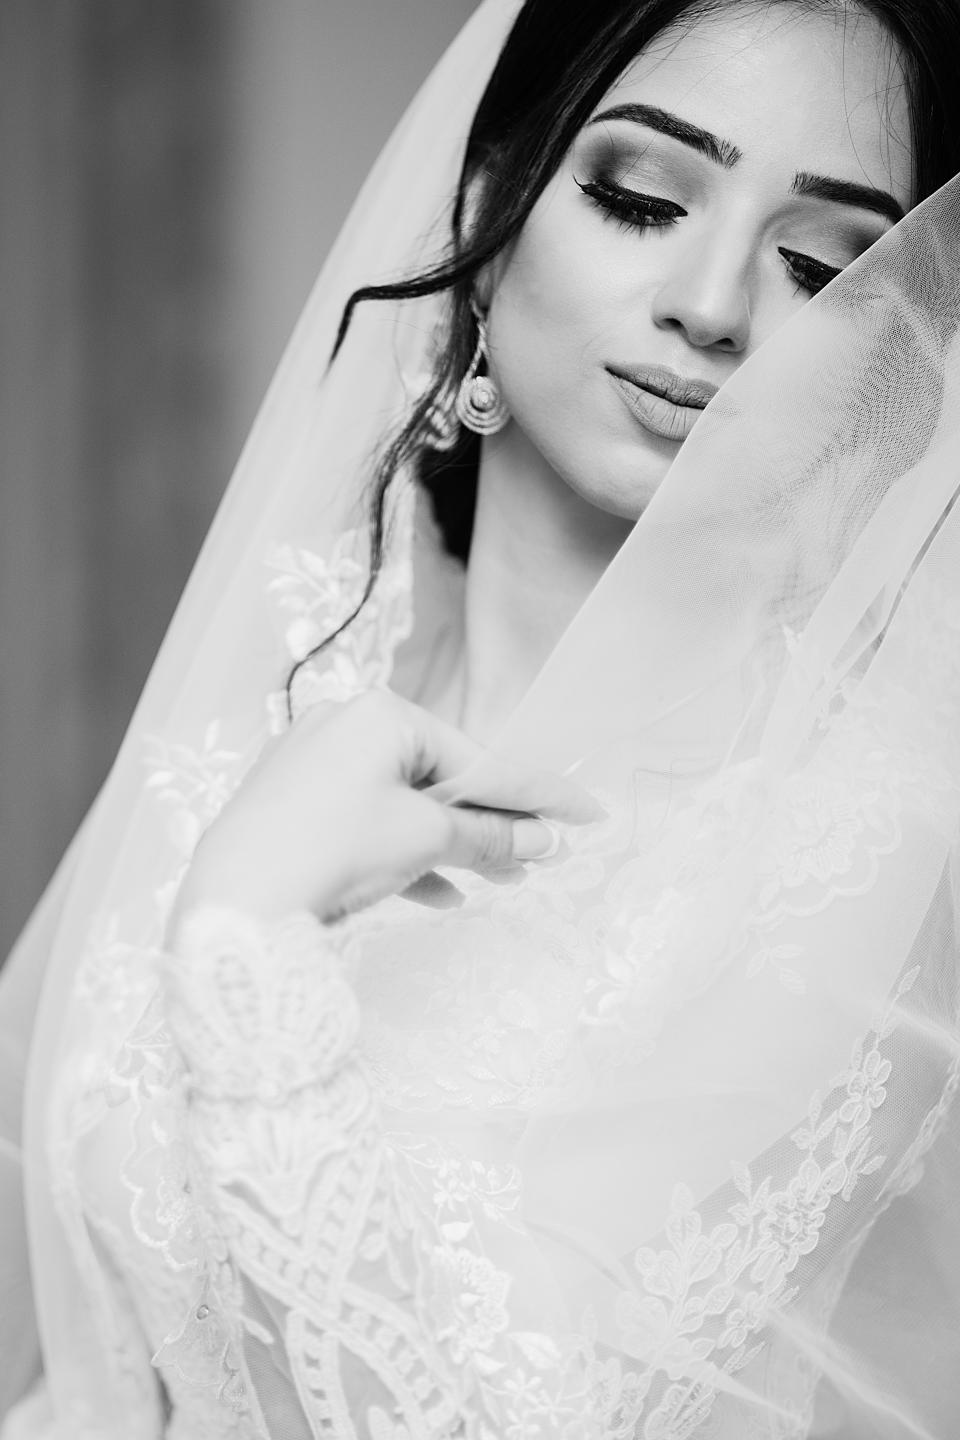 people girl woman bride white wedding gown dress makeup beauty